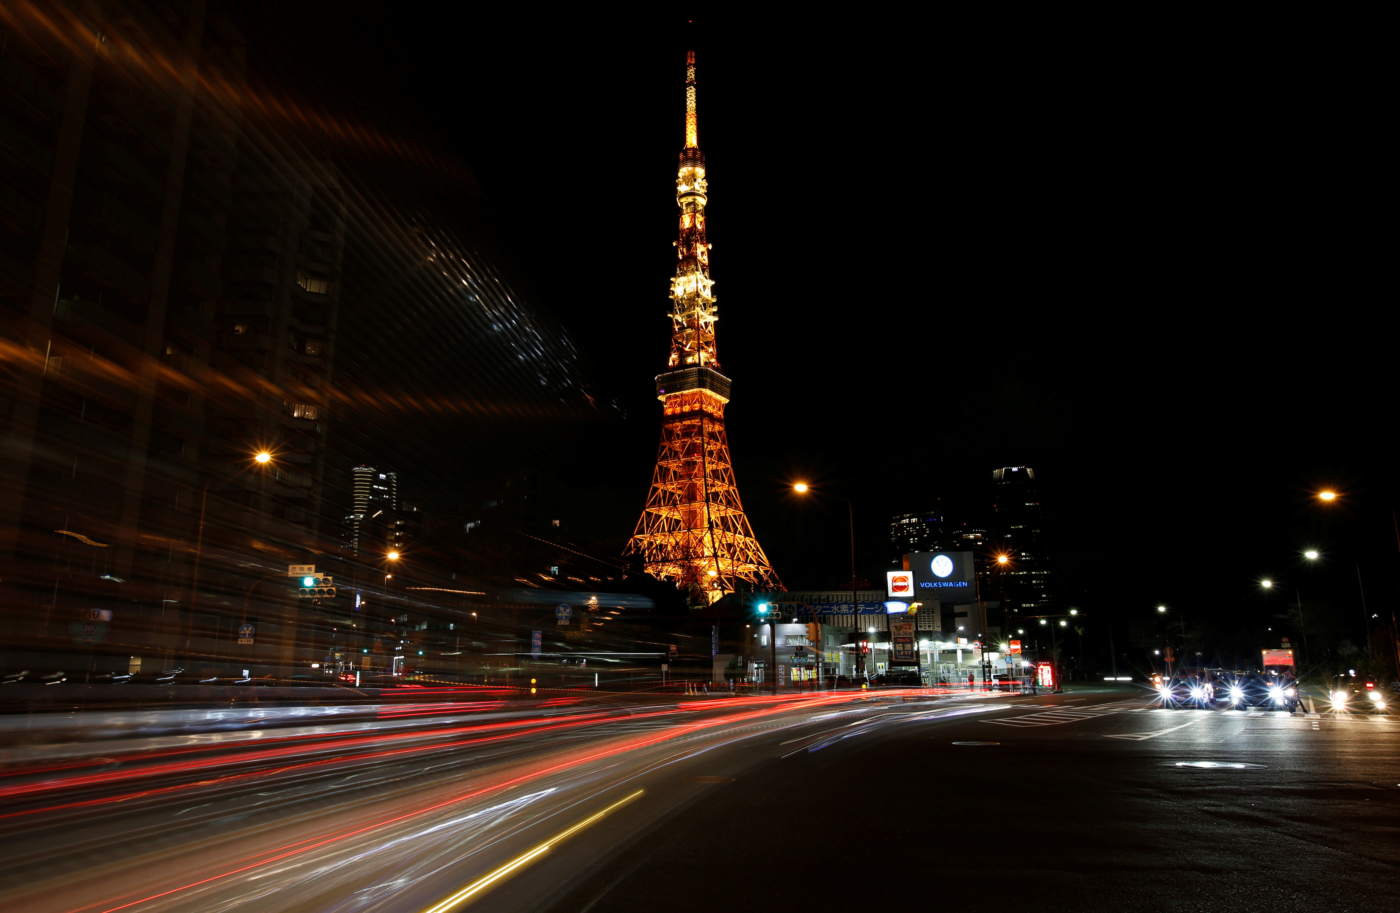 The Tokyo Tower is seen illuminated minutes before Earth Hour in Tokyo, Japan March  25, 2017. REUTERS/Issei Kato